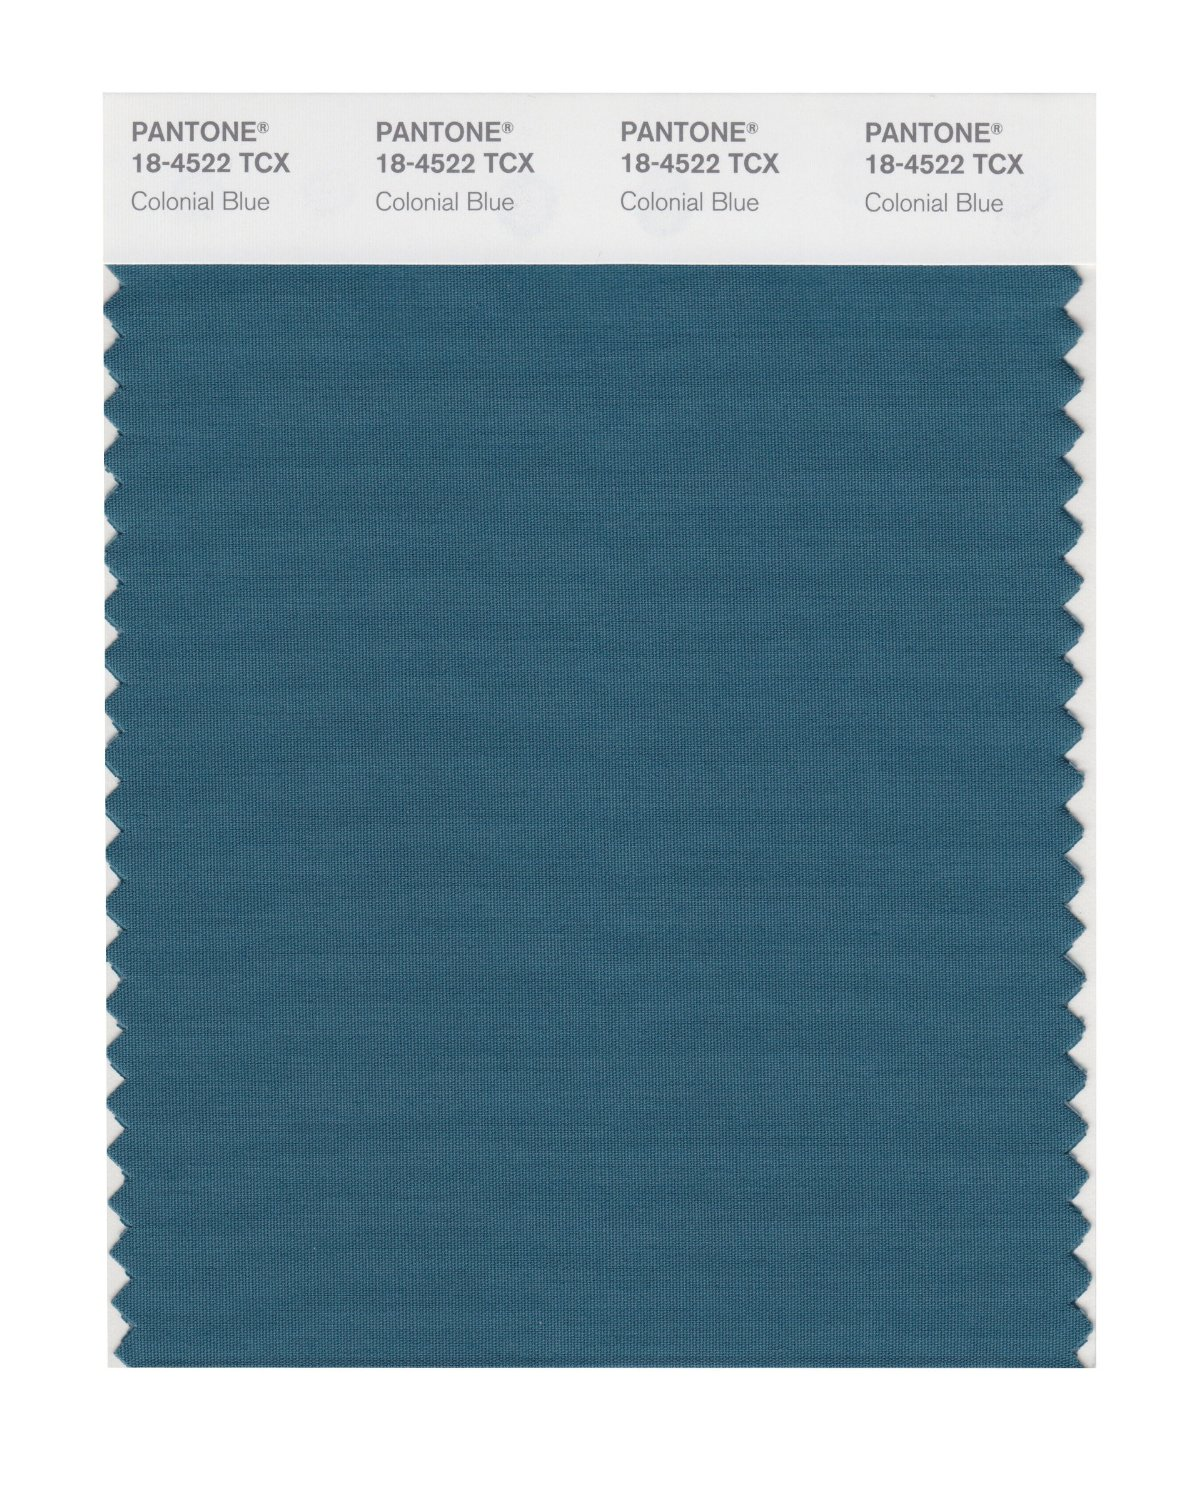 Pantone Smart Swatch 18-4522 Colonial Blue